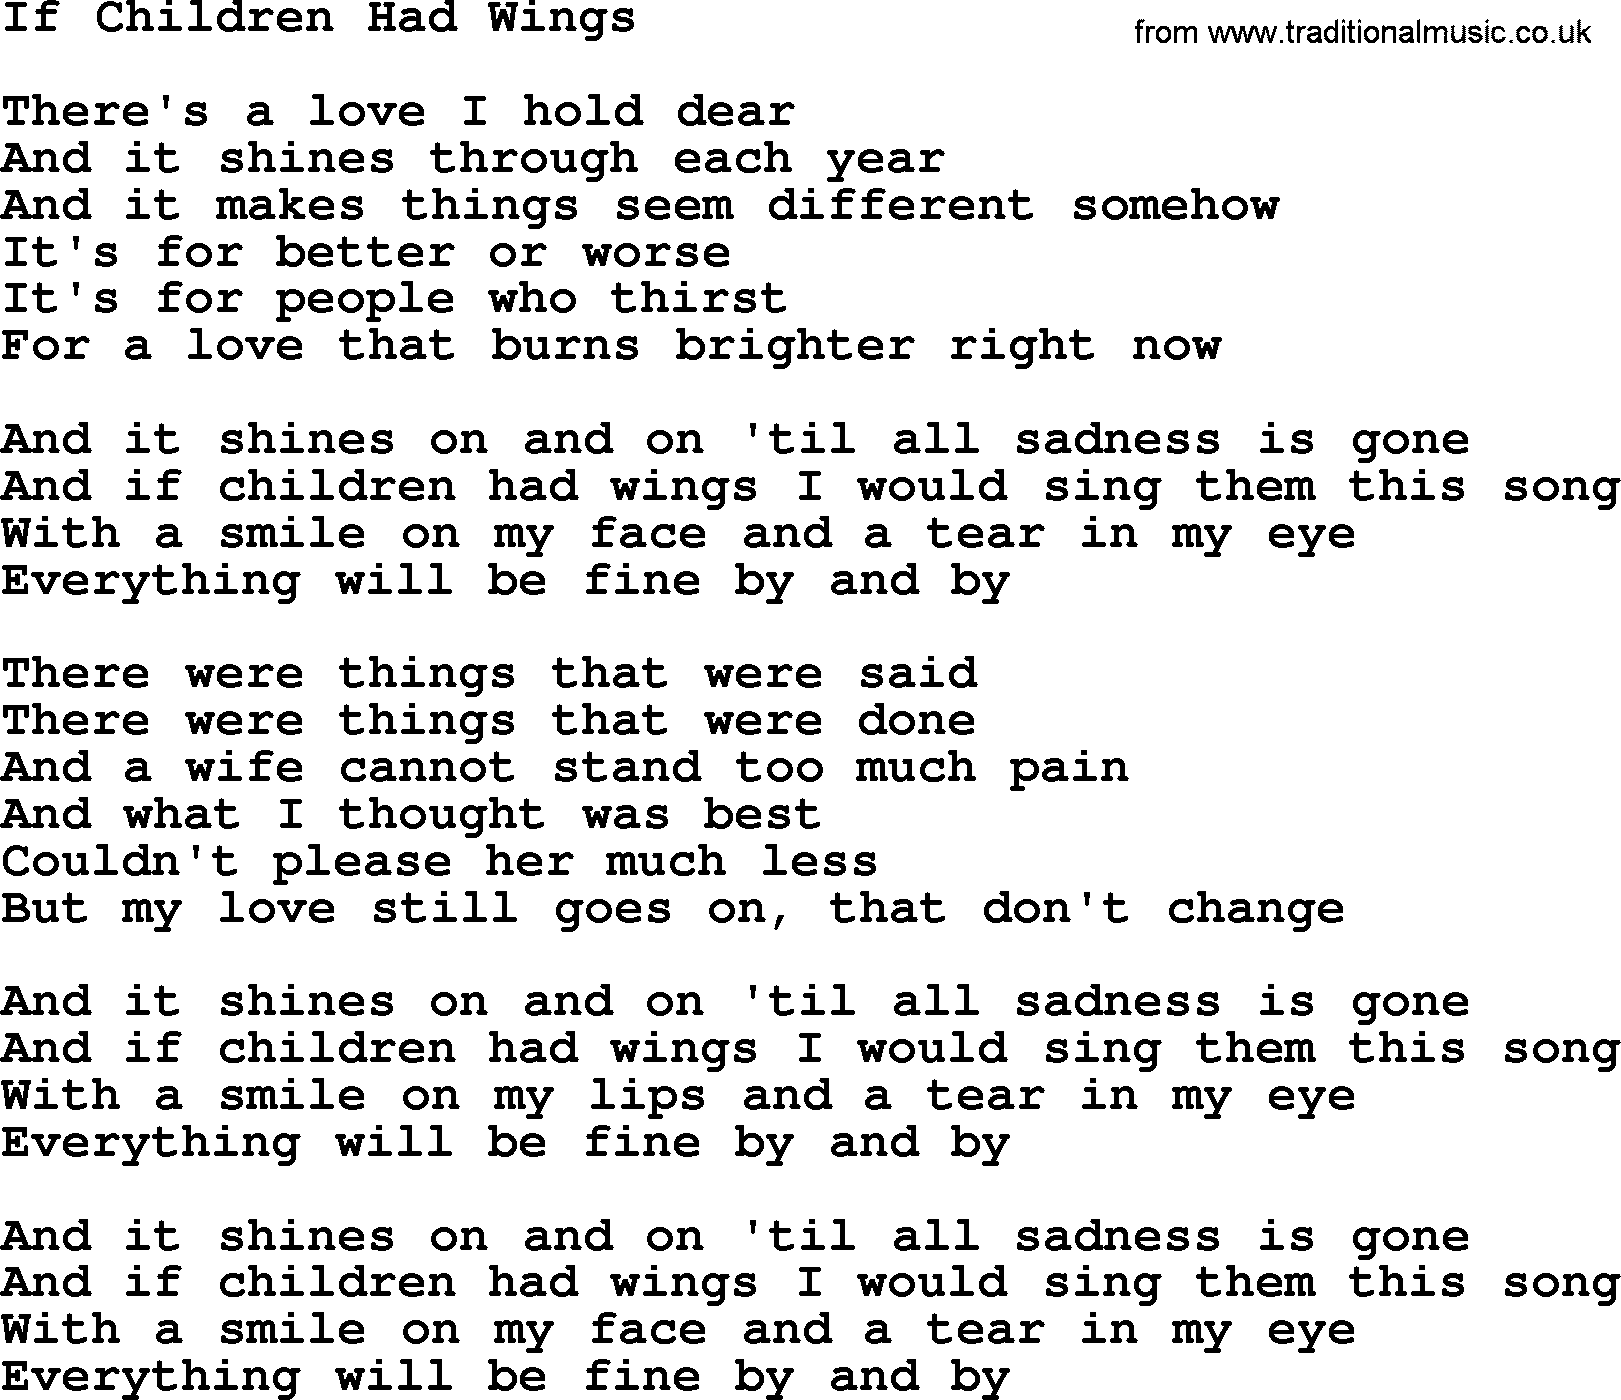 Gordon Lightfoot Song If Children Had Wings, Lyrics